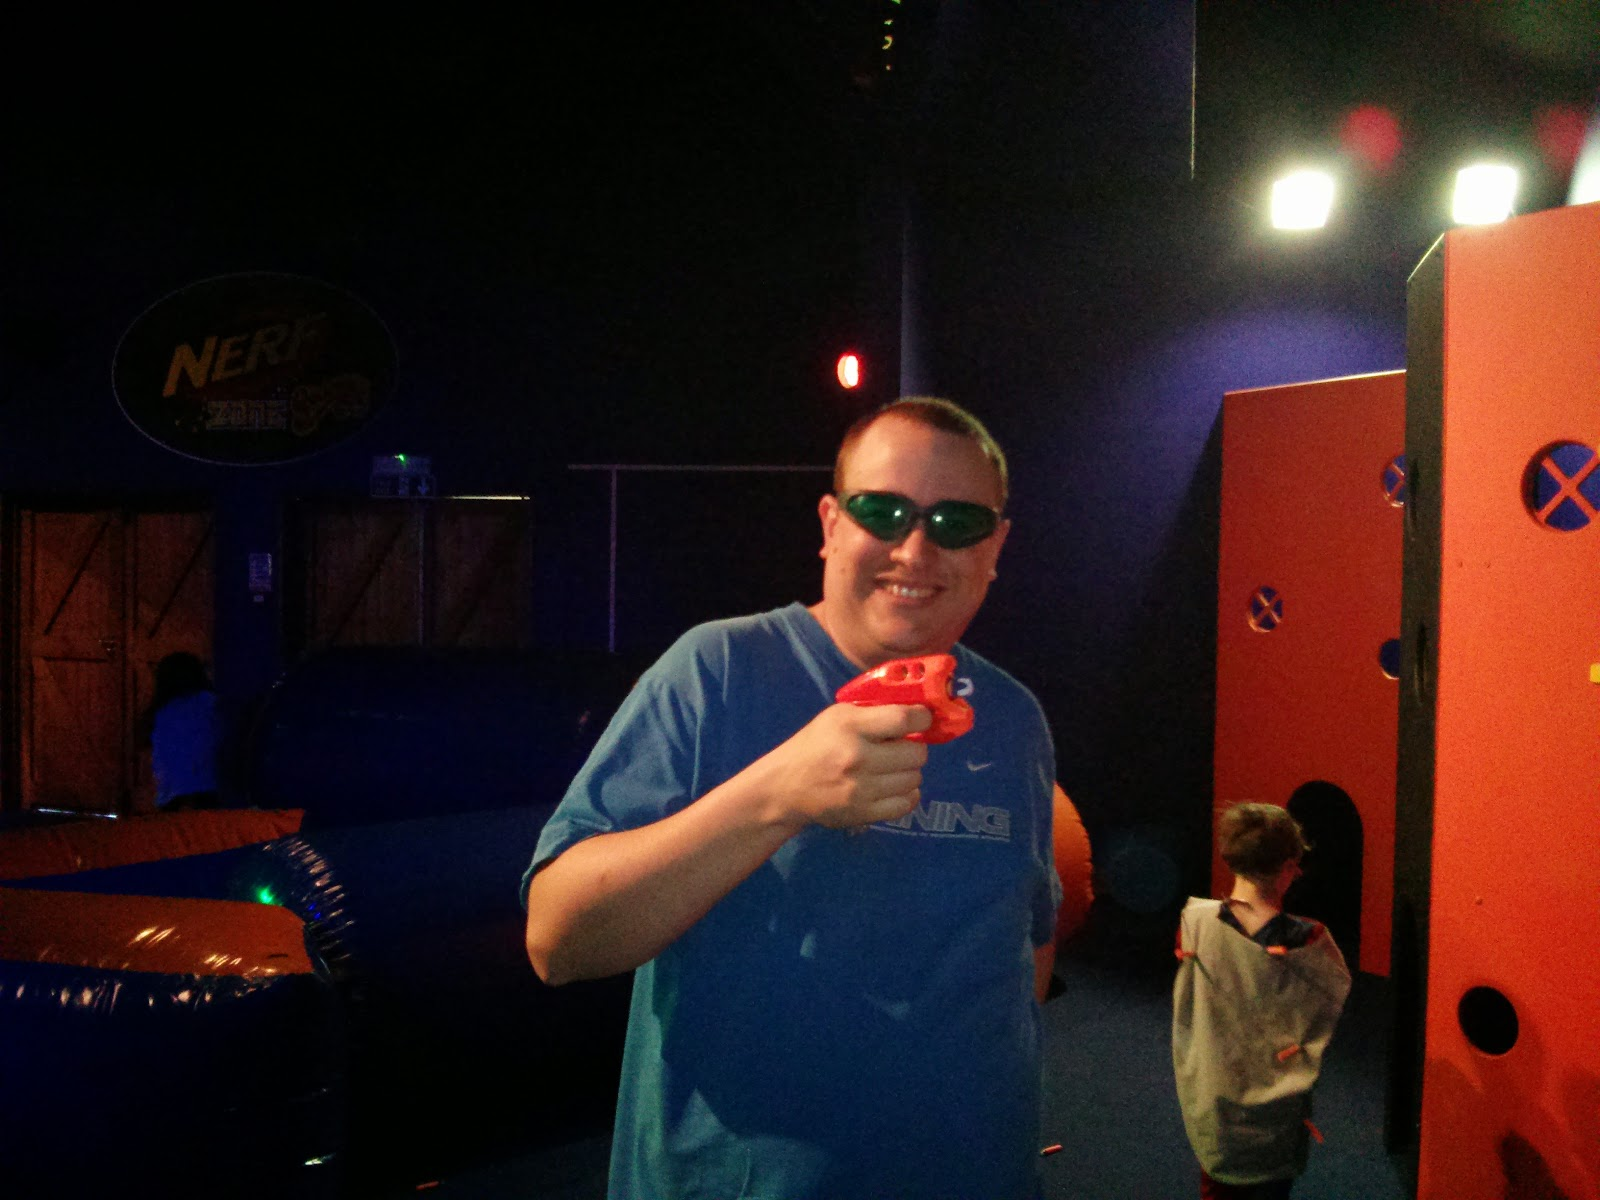 Daddy at the Nerf Party Gullivers Land Milton Keynes